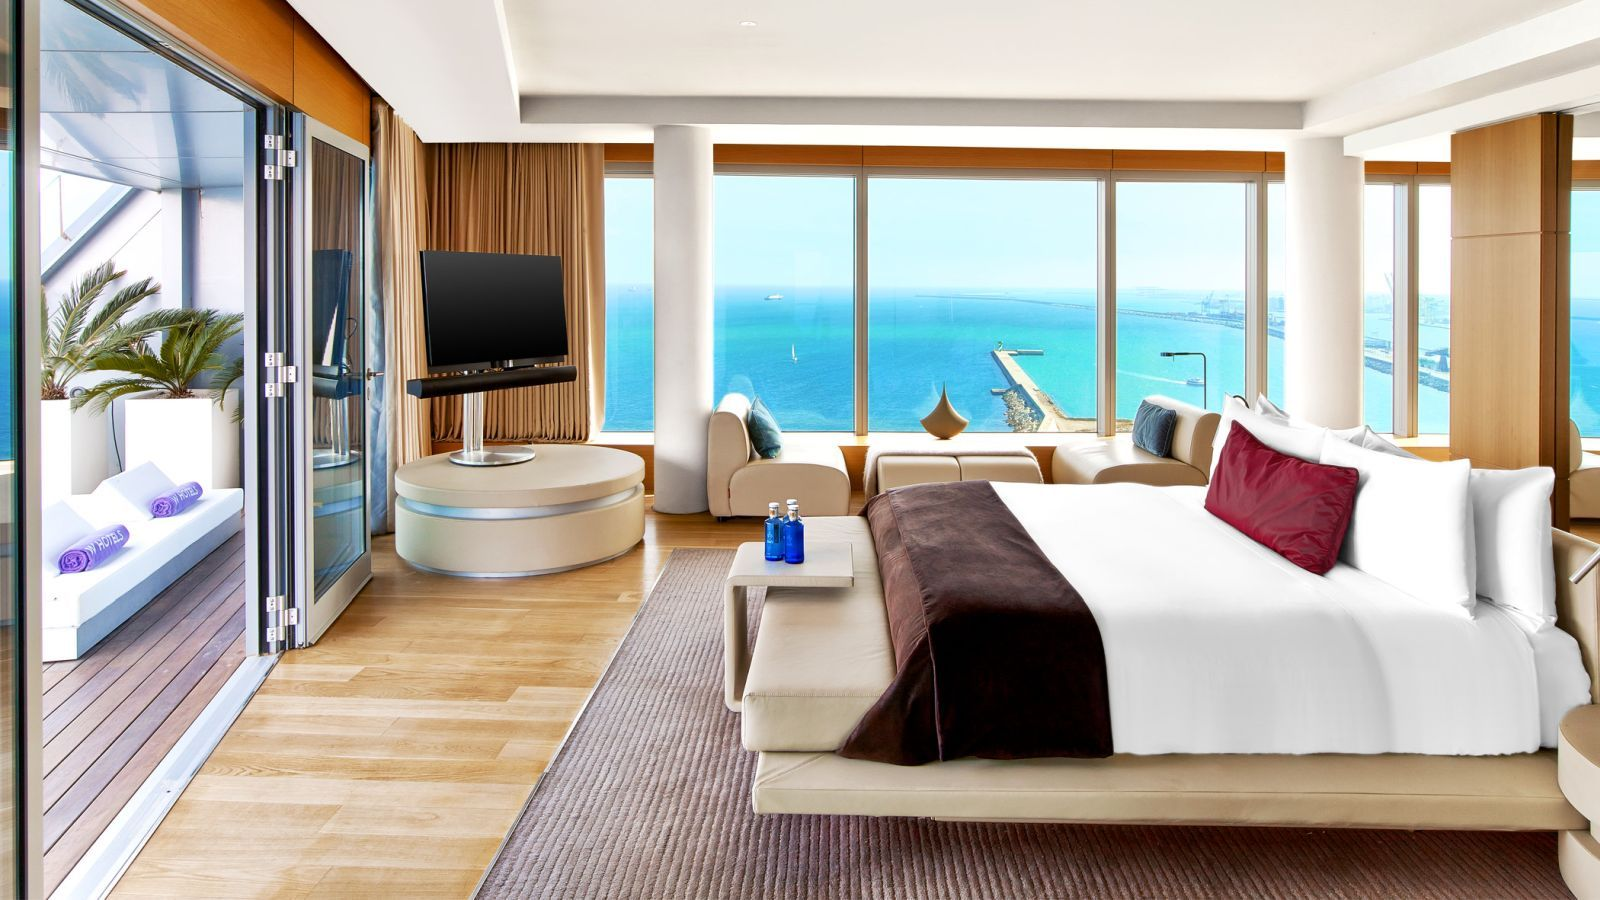 5 star hotel extreme wow suite bedroom at W Barcelona